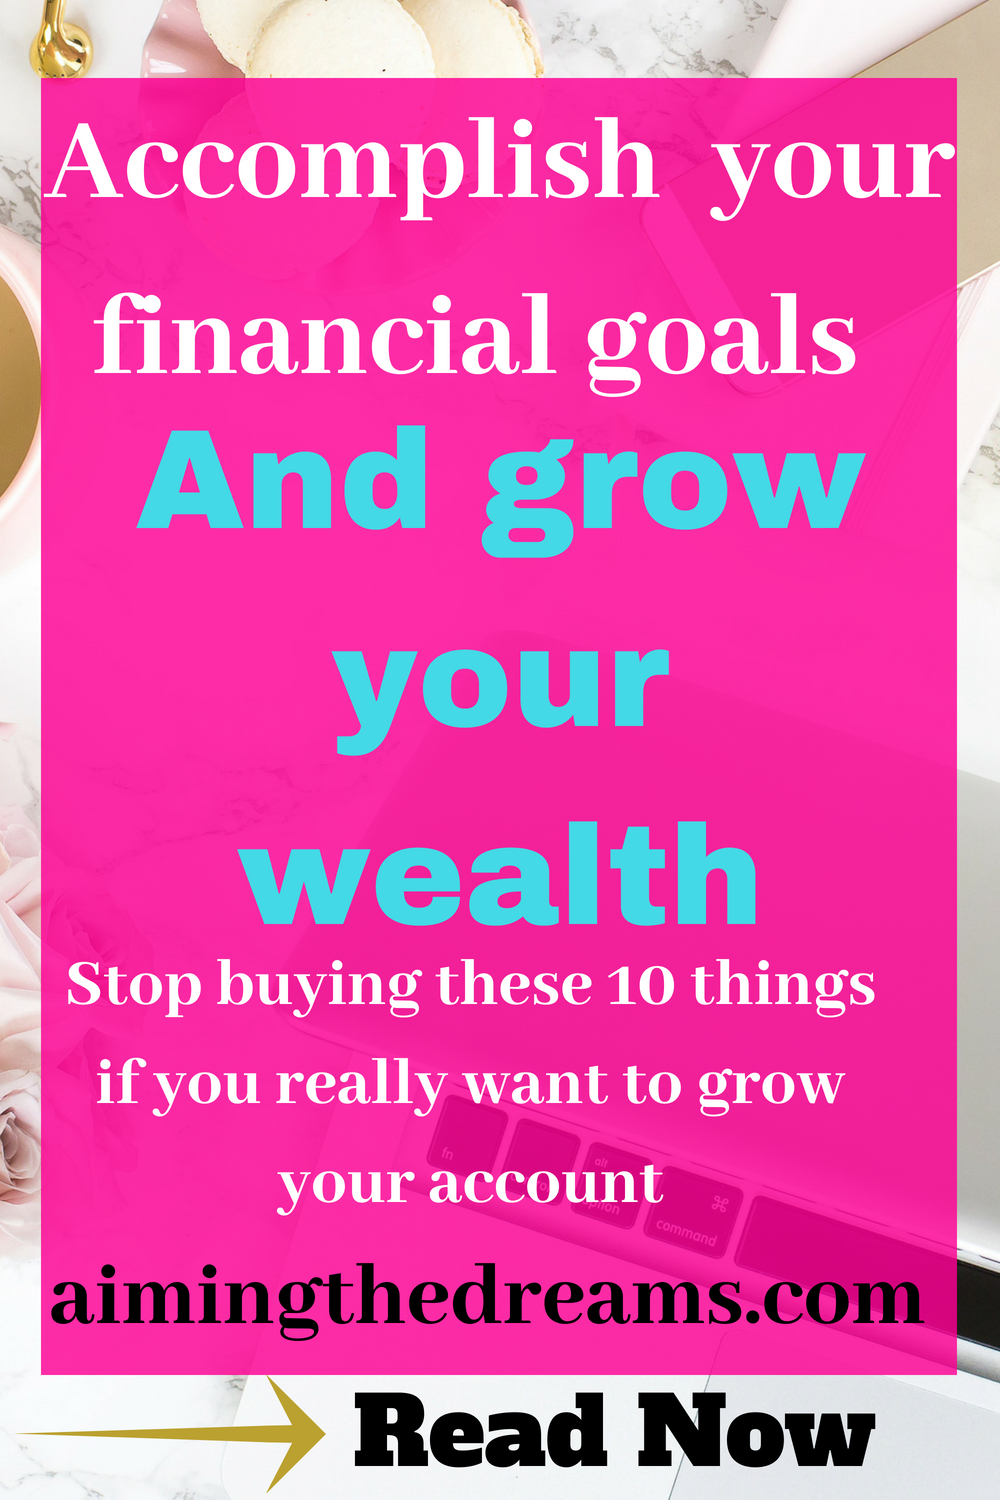 Grow your wealth by spending onlu on those things which you really need. Start looking at the difference between what you need and what you want. And only buy those things which are really good for growing your savings.